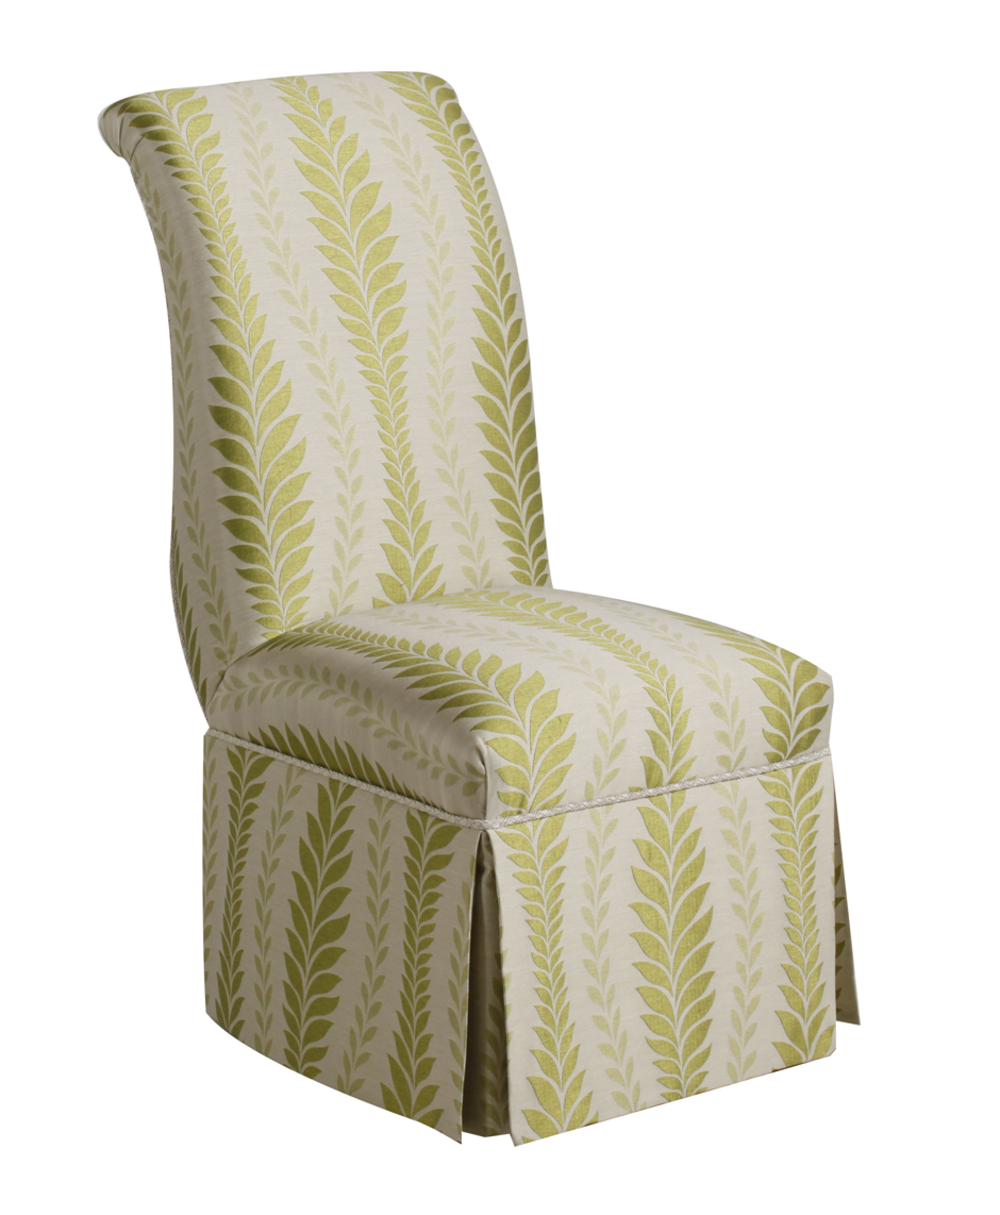 COX MANUFACTURING COMPANY, INC - Side Chair